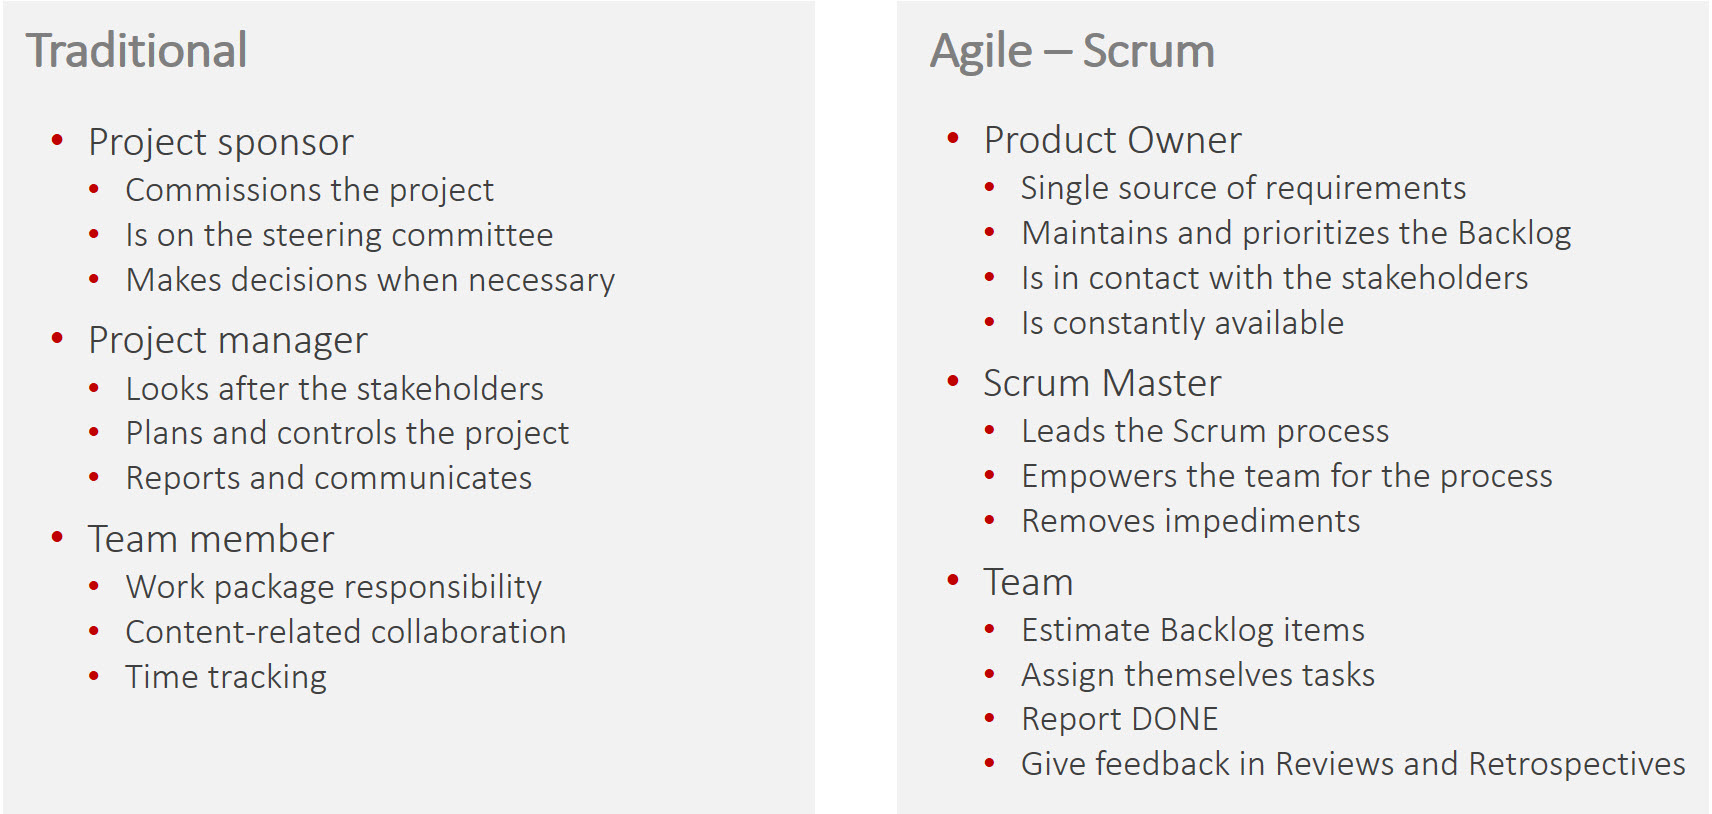 Agile project management, traditional or hybrid 7